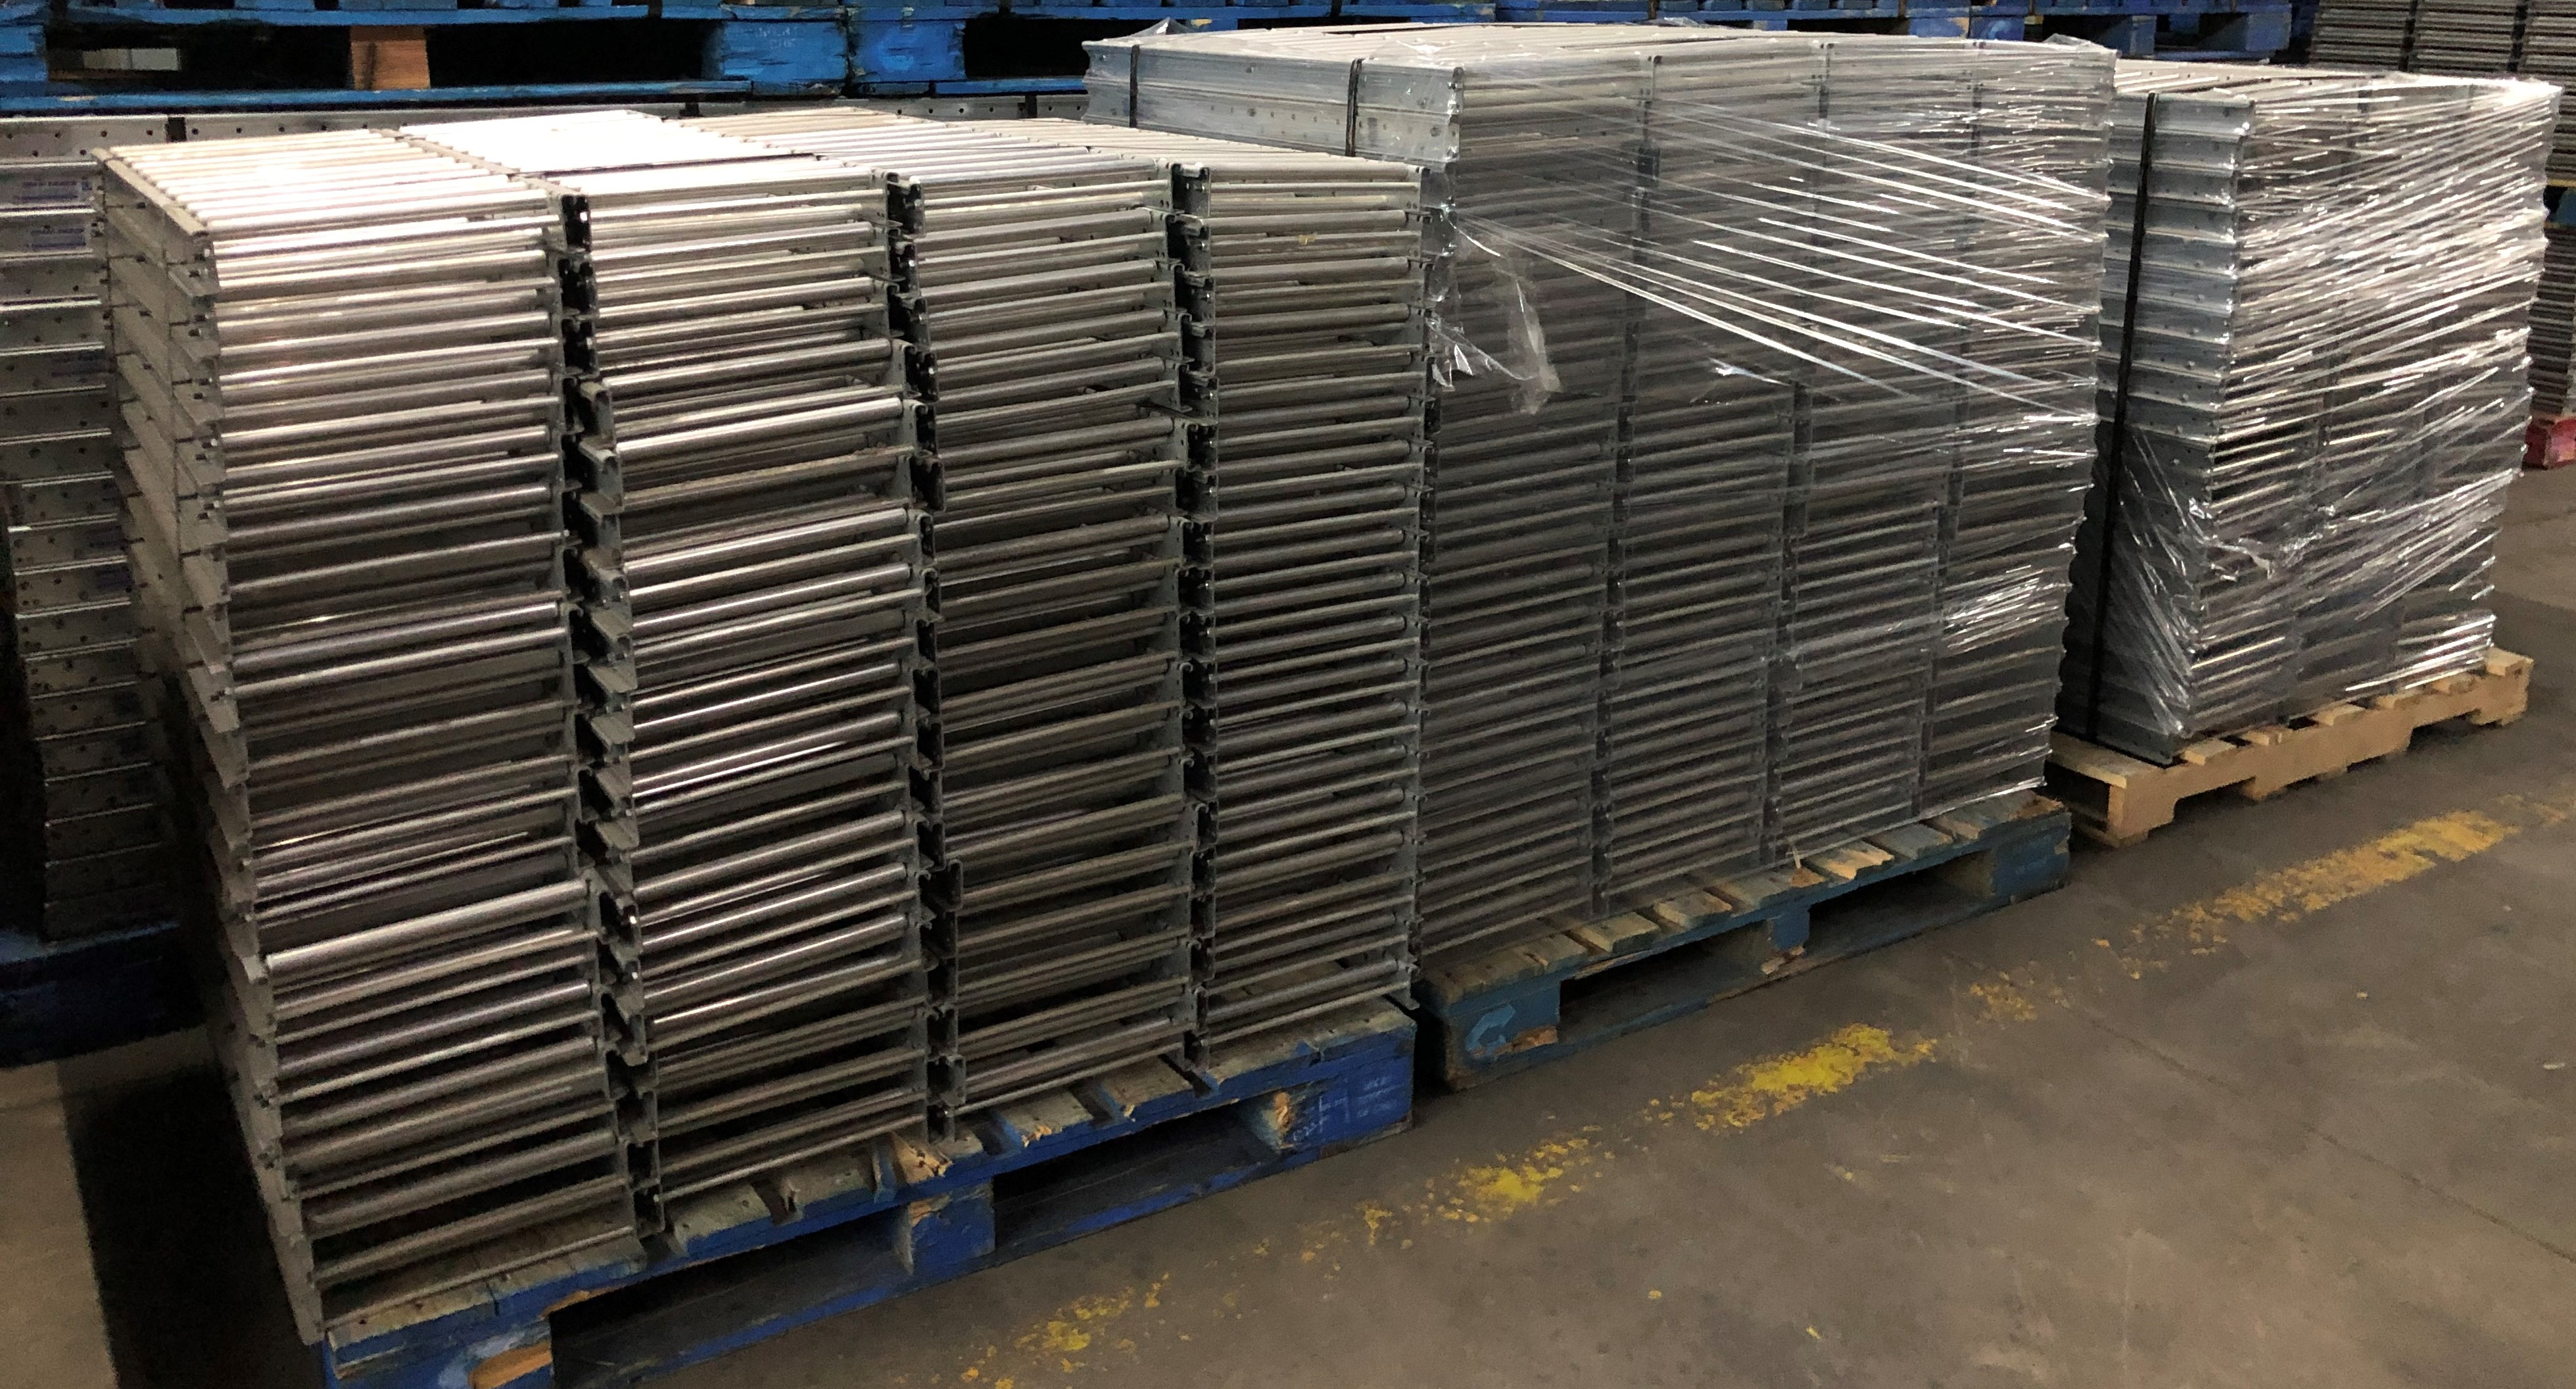 Lot 25 - 40 PCS OF USED SPAN TRACK